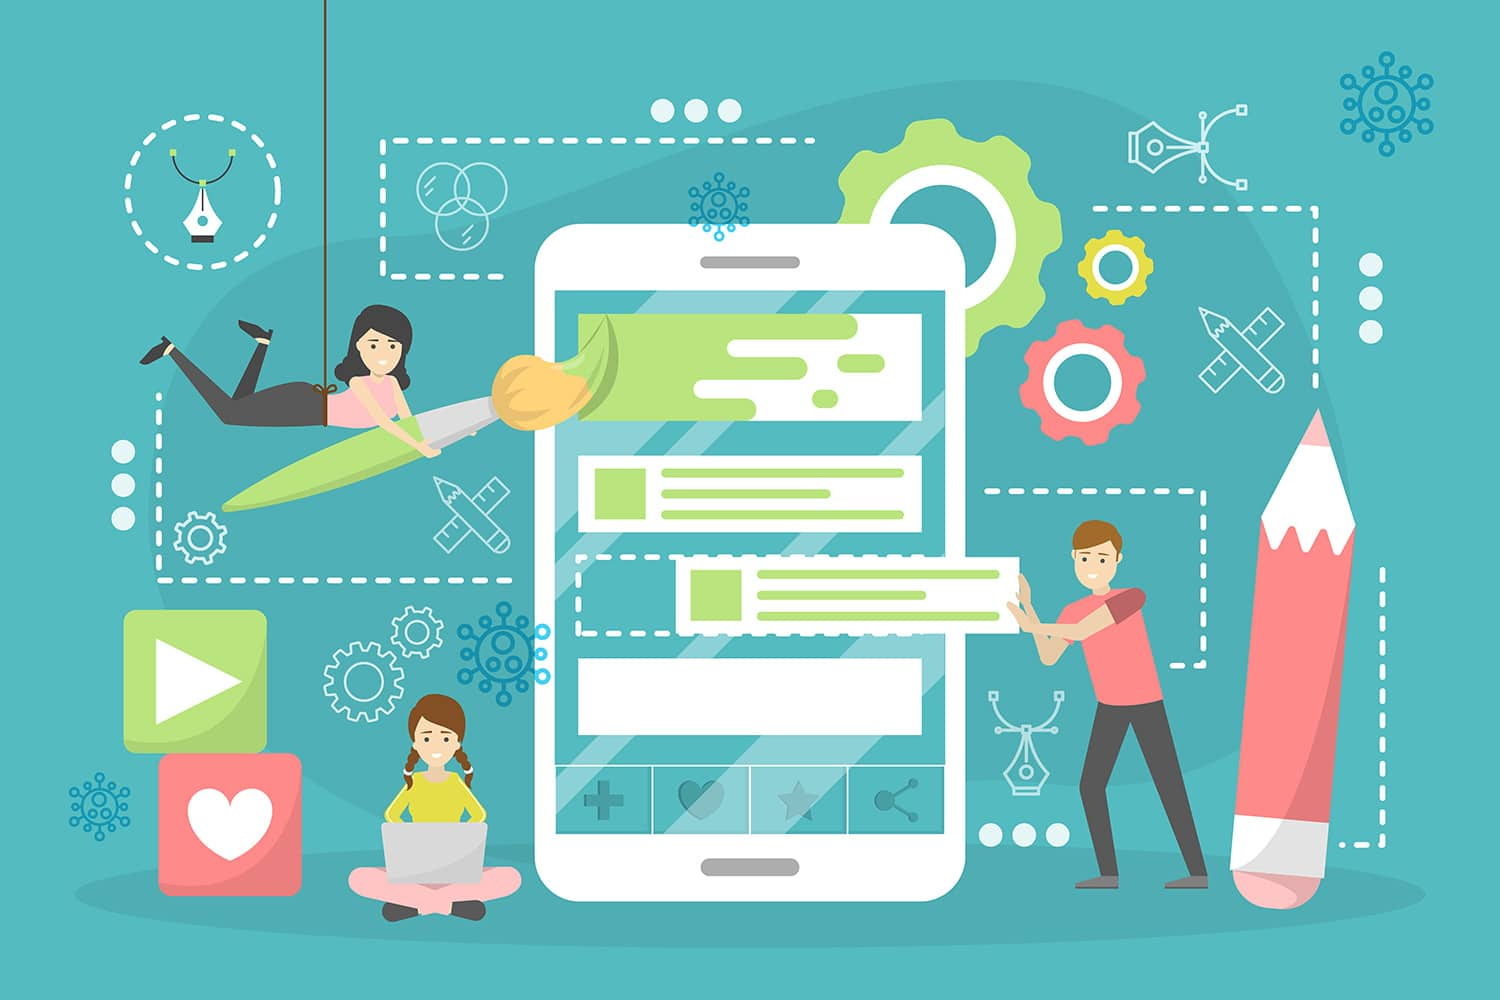 Mobile App Development Companies Growth During Pandemic